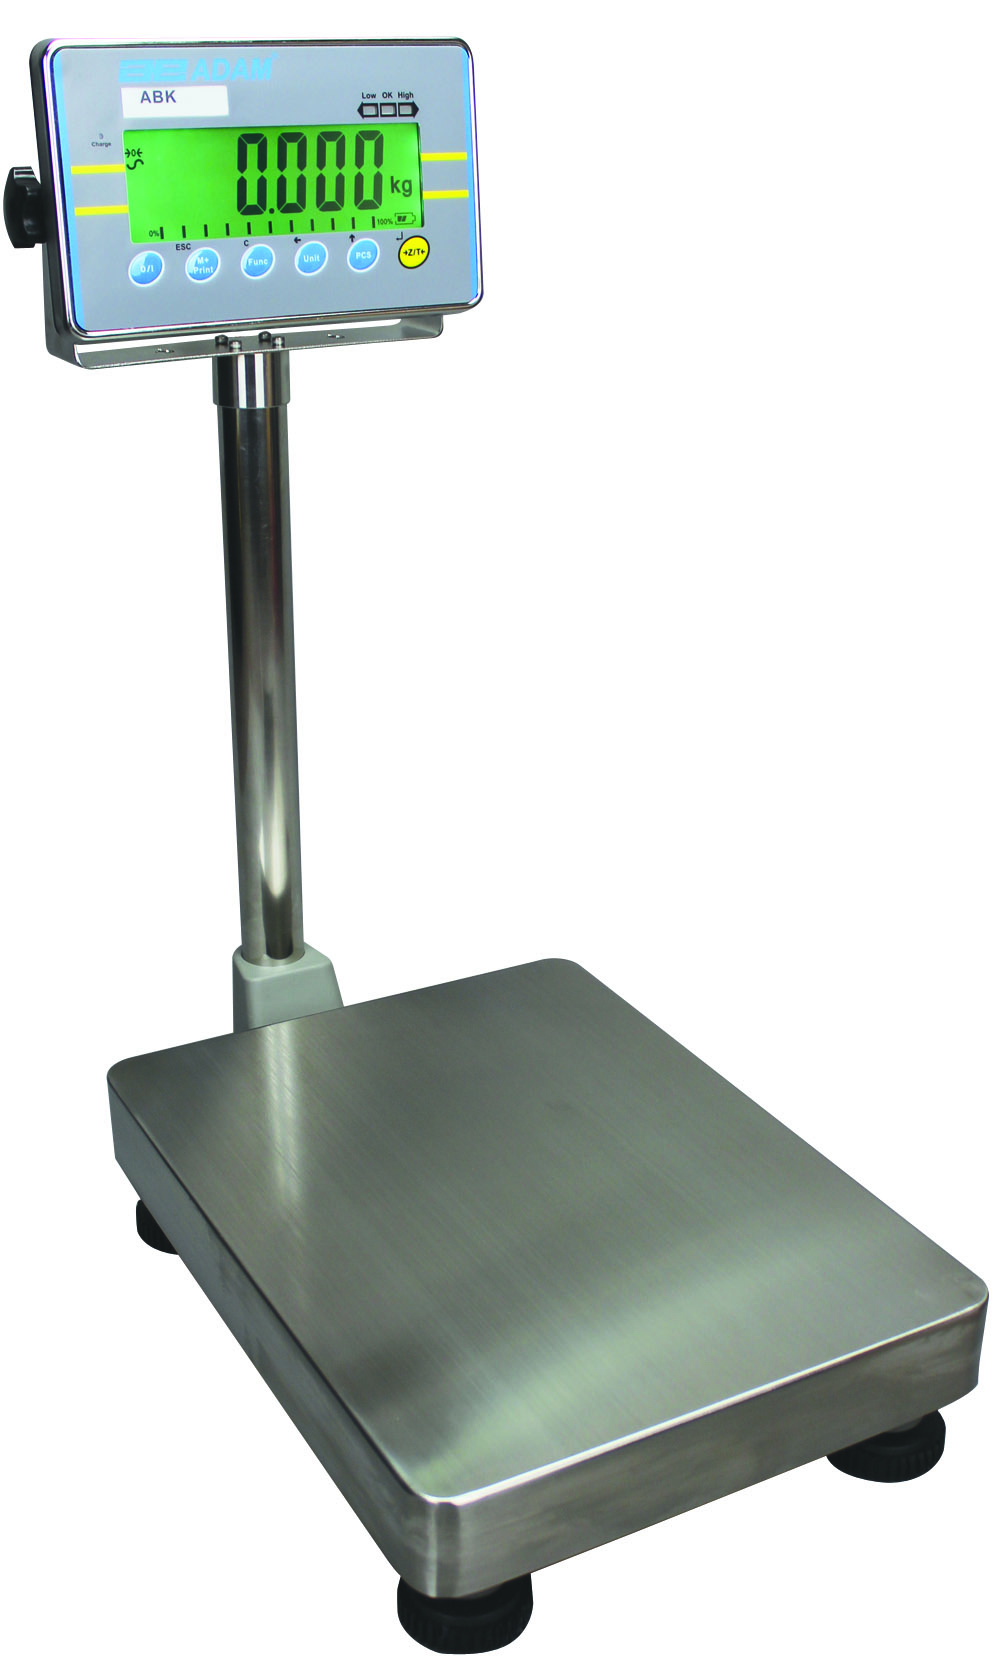 A - ABK 8 to 60 Bench Weighing Scale